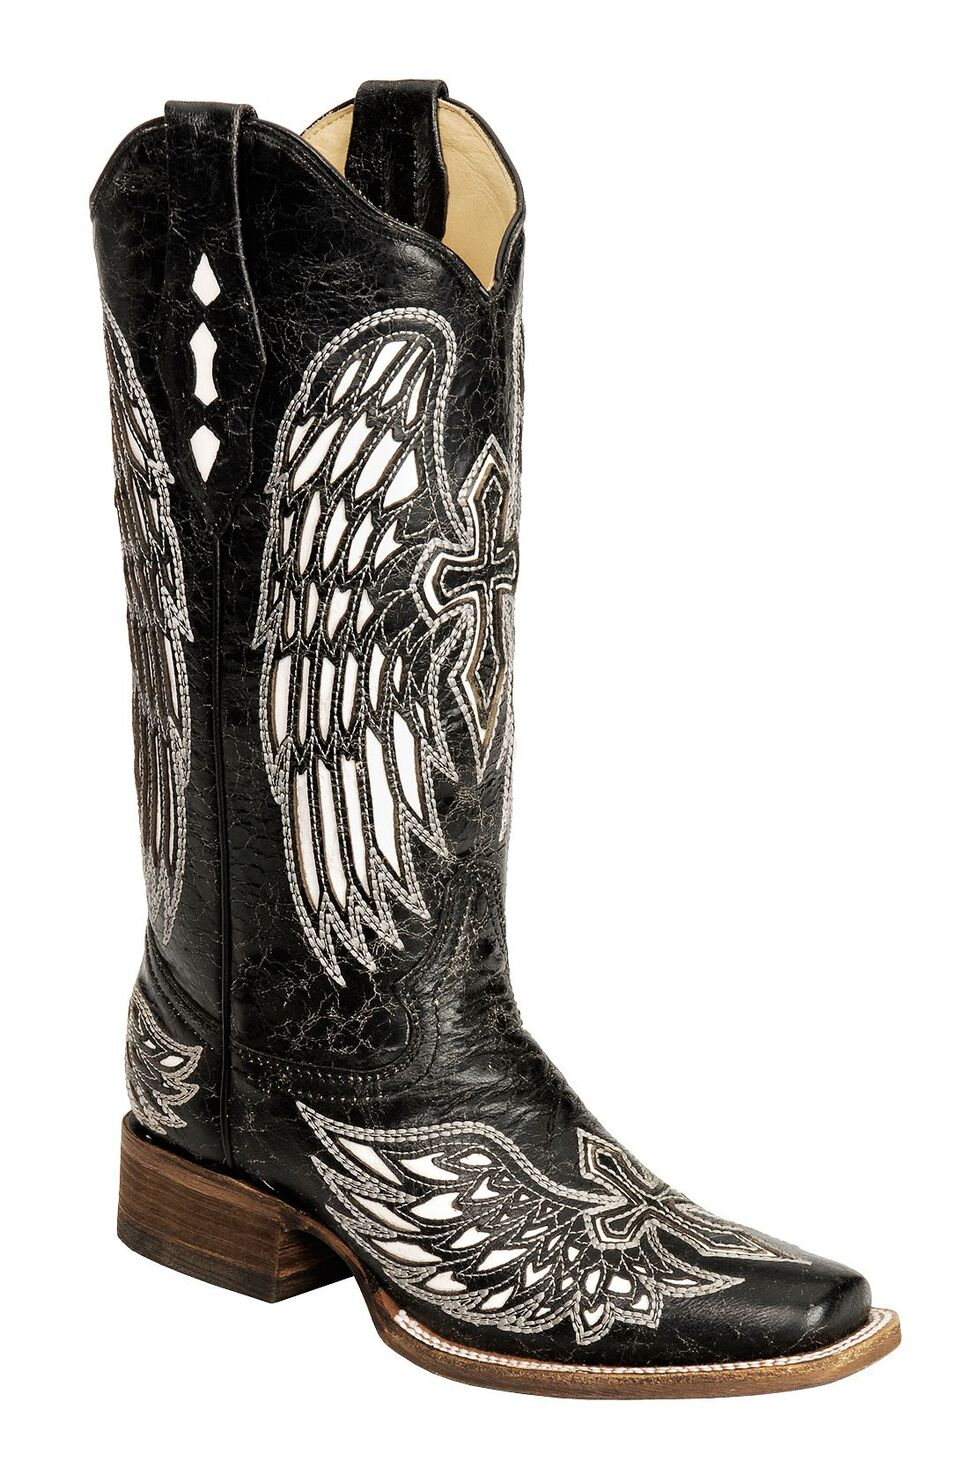 Corral Distressed Black with White Cross & Wing Inlay Cowgirl Boots - Square Toe, Black, hi-res